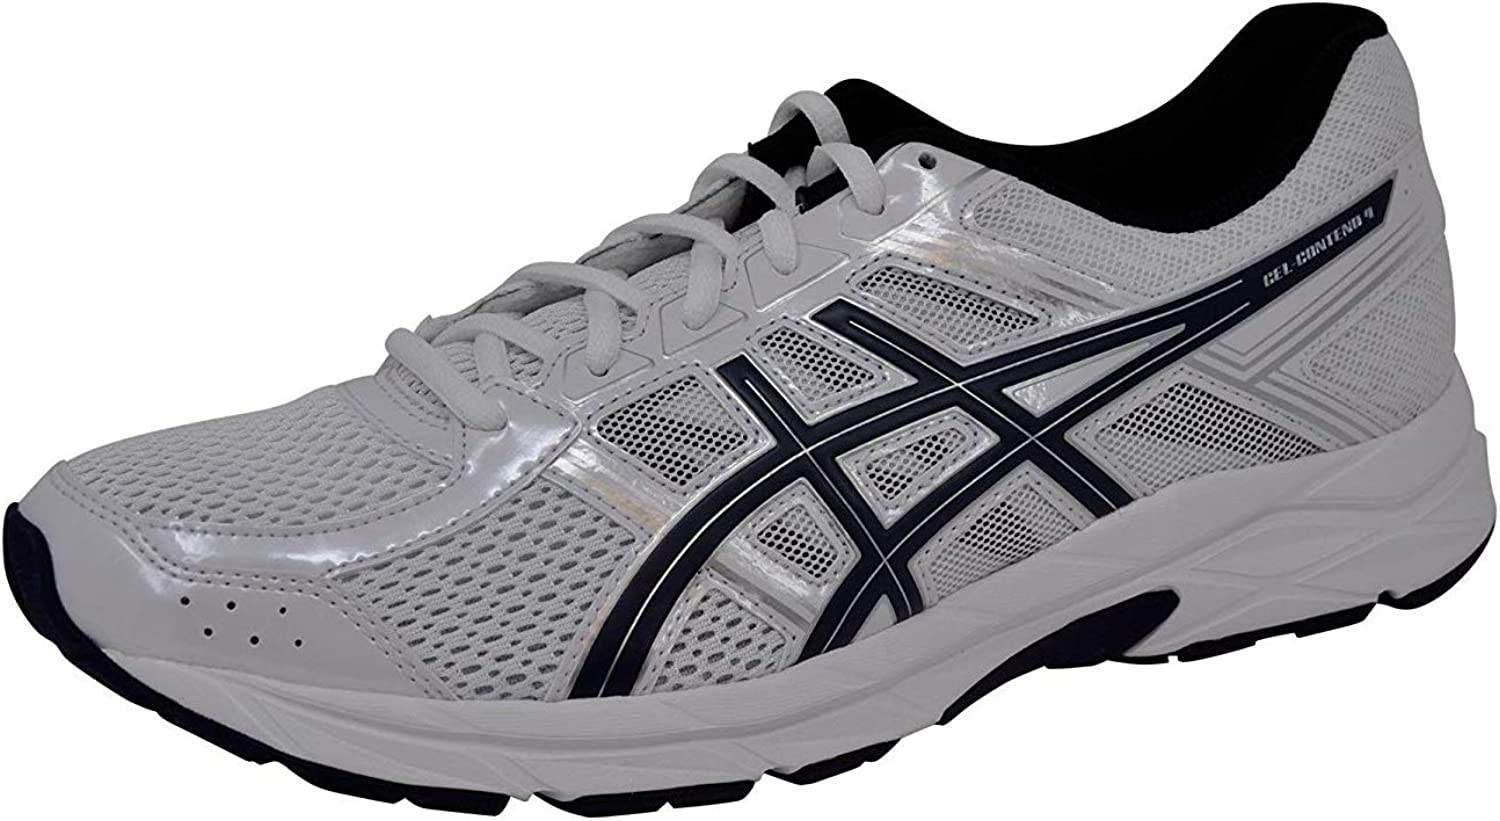 ASICS Mens Gel-Contend 4 correrening sautope, bianca blu argento, 11 D(M) US